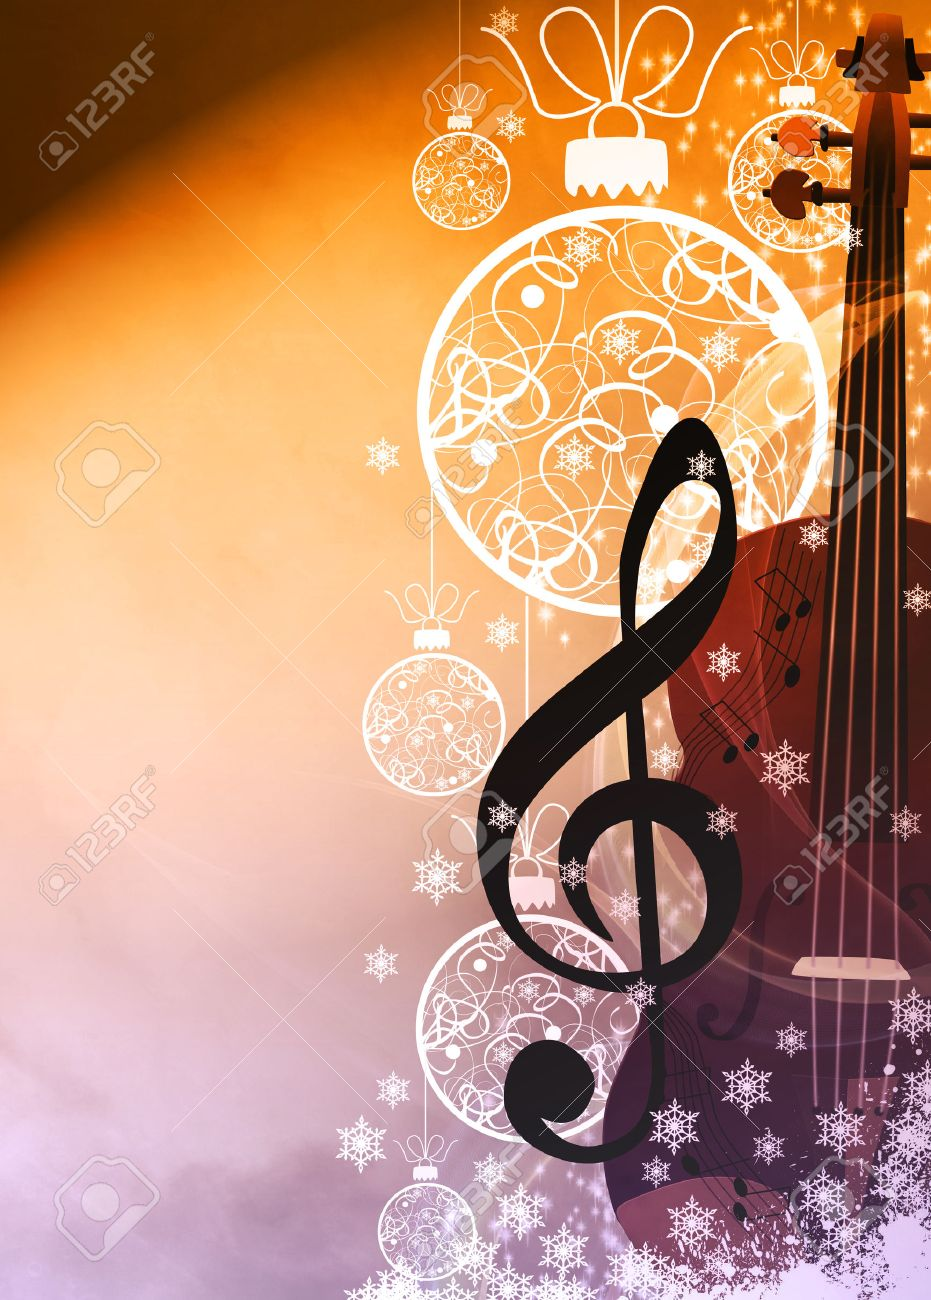 Christmas Music Background.Advent Or Christmas Music Concenrt Advert Poster Or Flyer Background